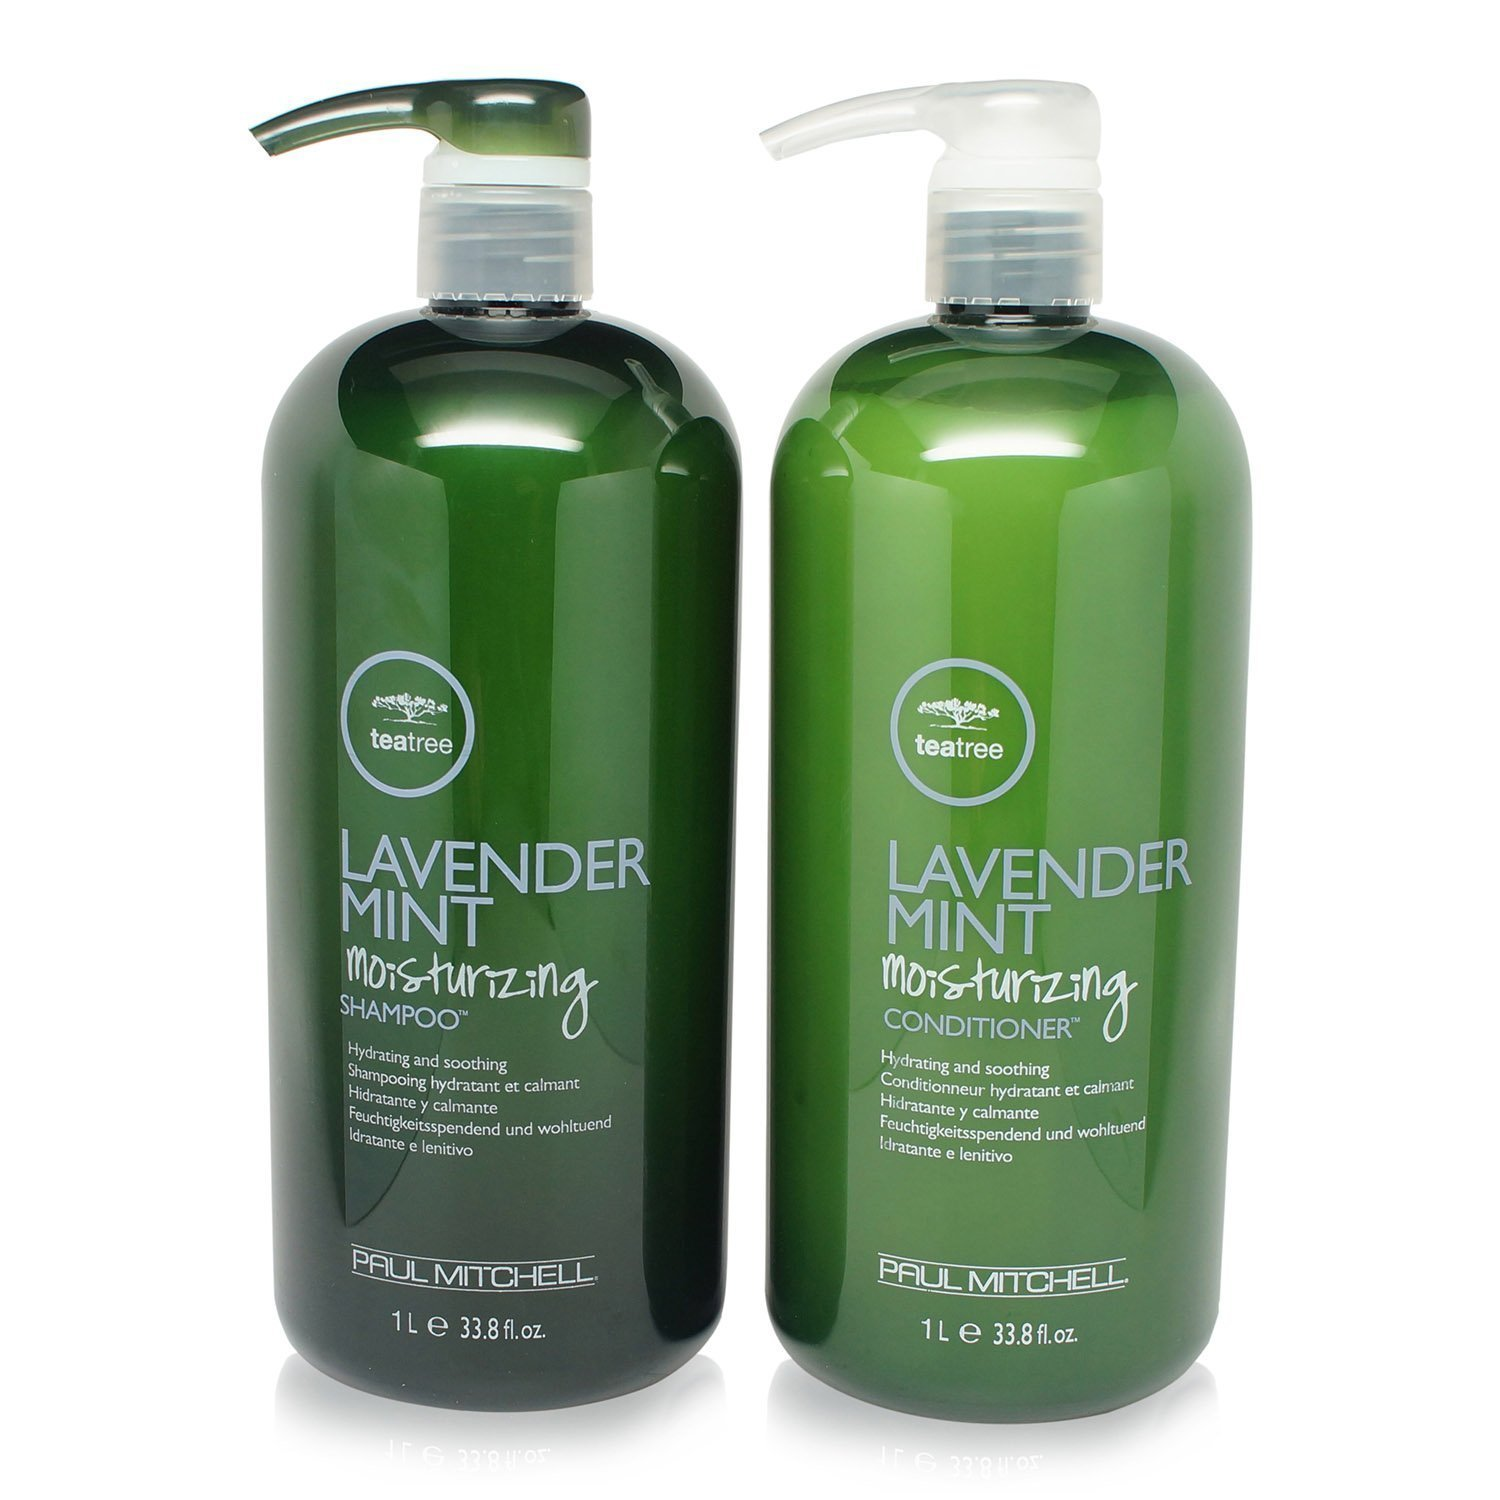 Paul Mitchell Lavender Mint Hydrating Shampoo and Conditioner 33.8 OZ DUO